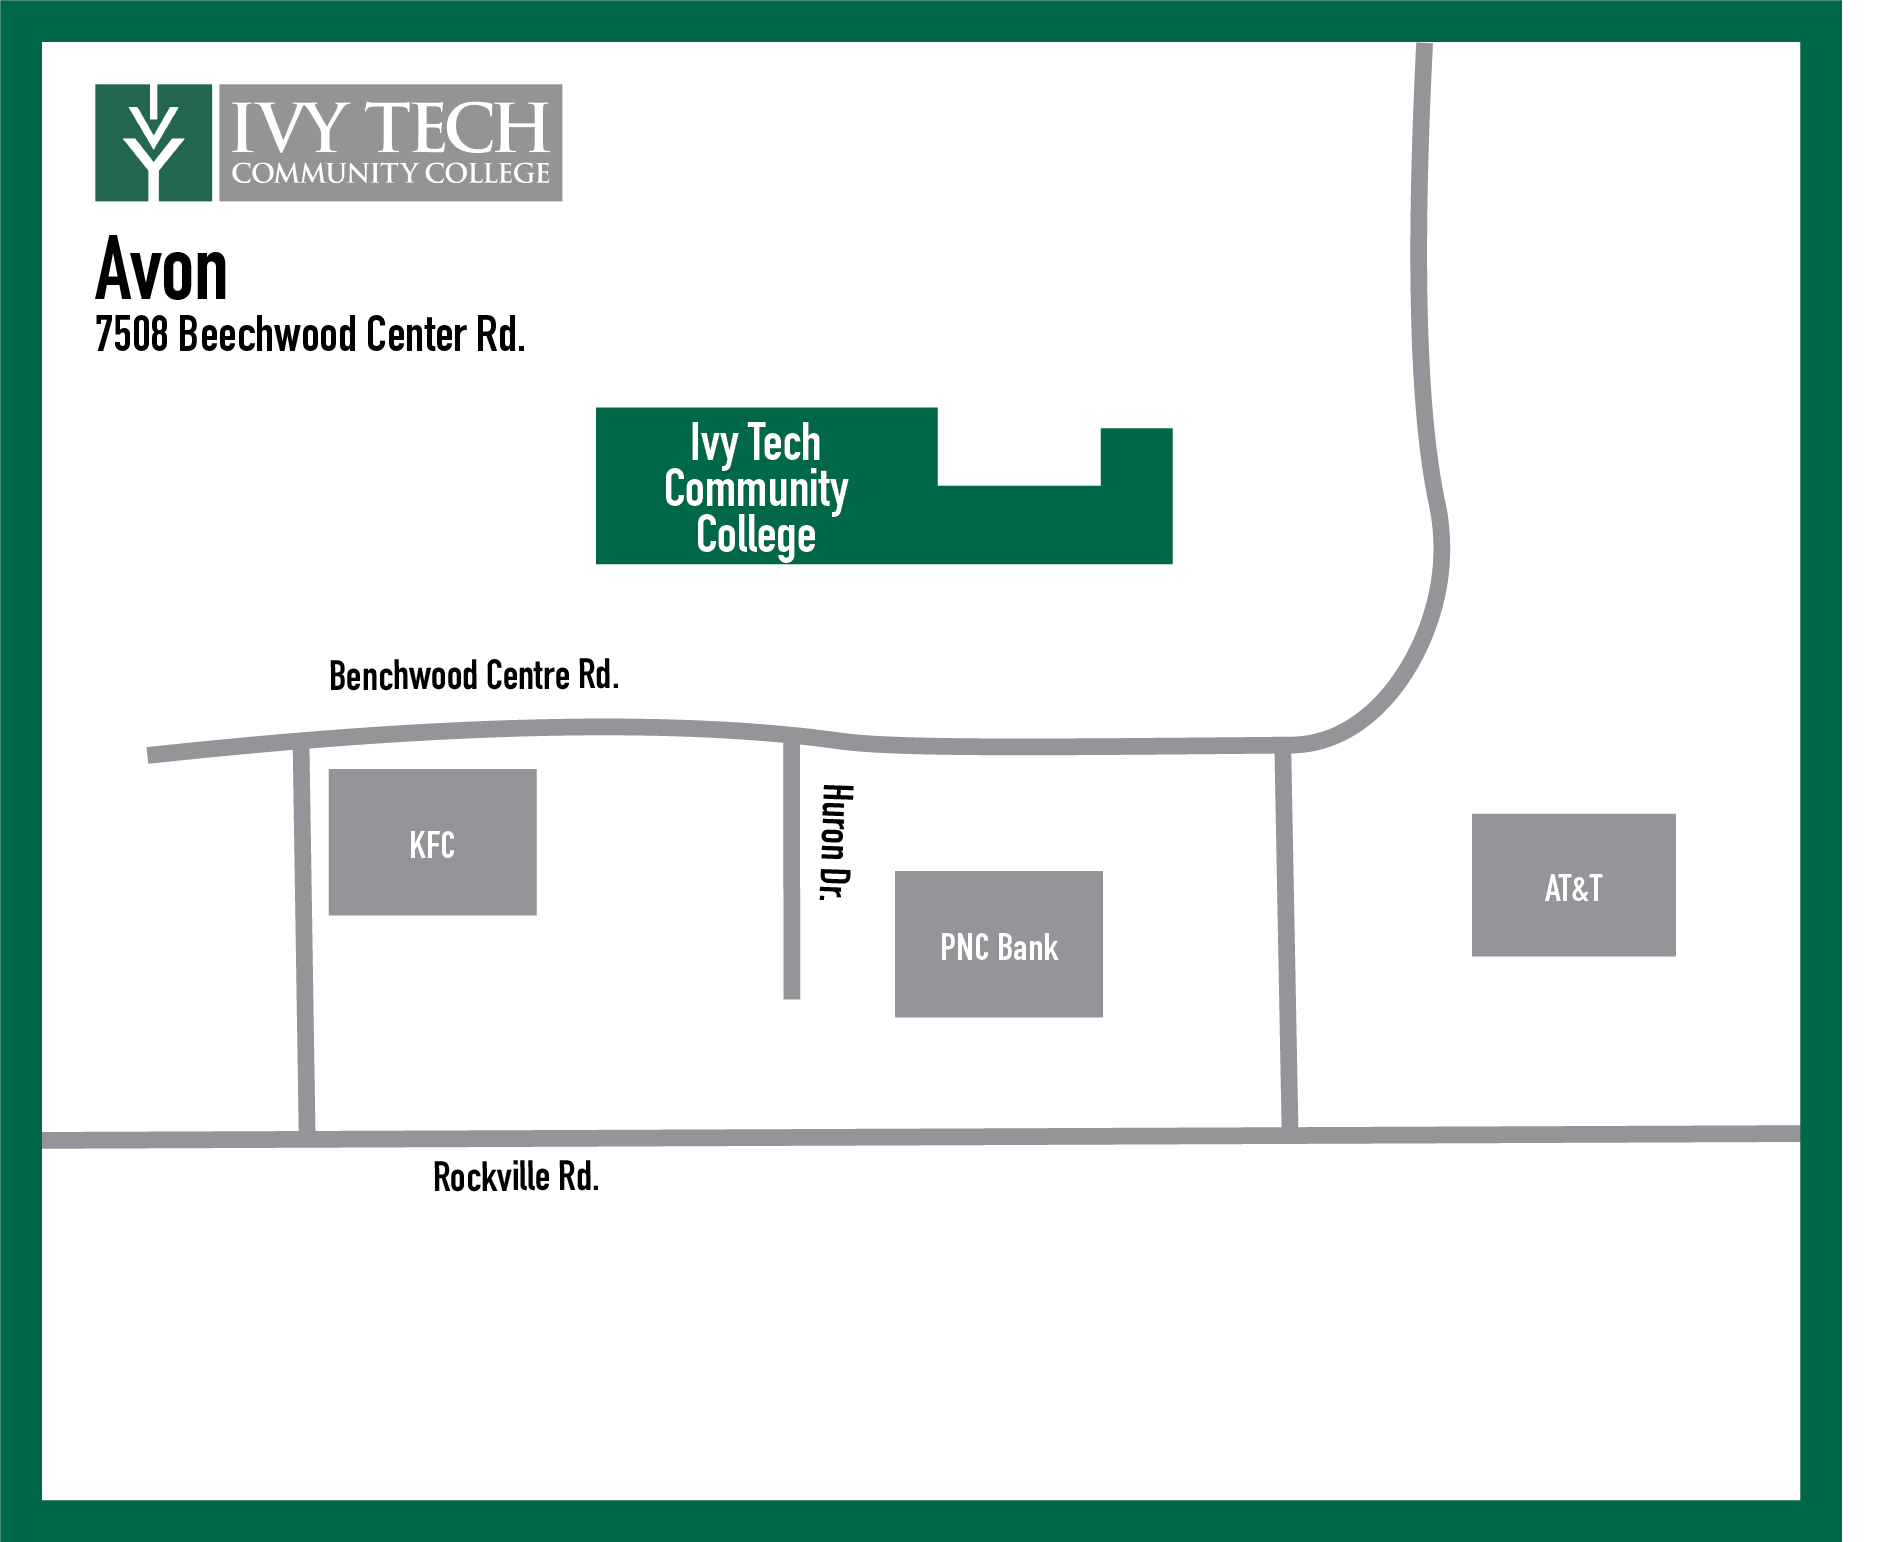 Ivy Tech avon campus map